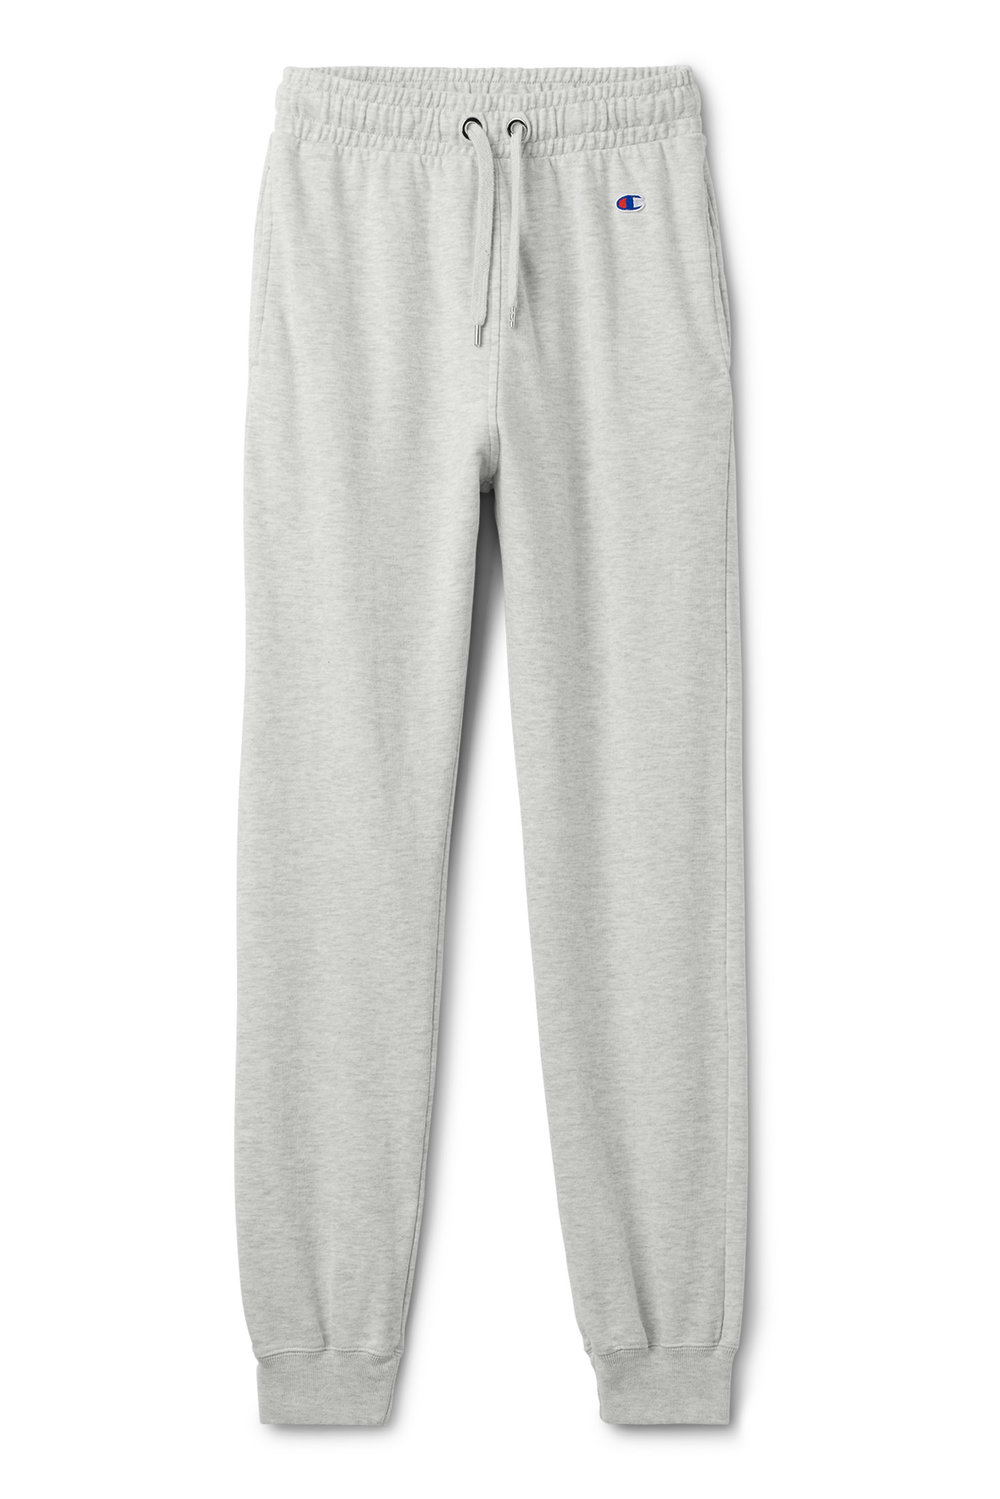 Champion_SweatPants_0_0.jpg